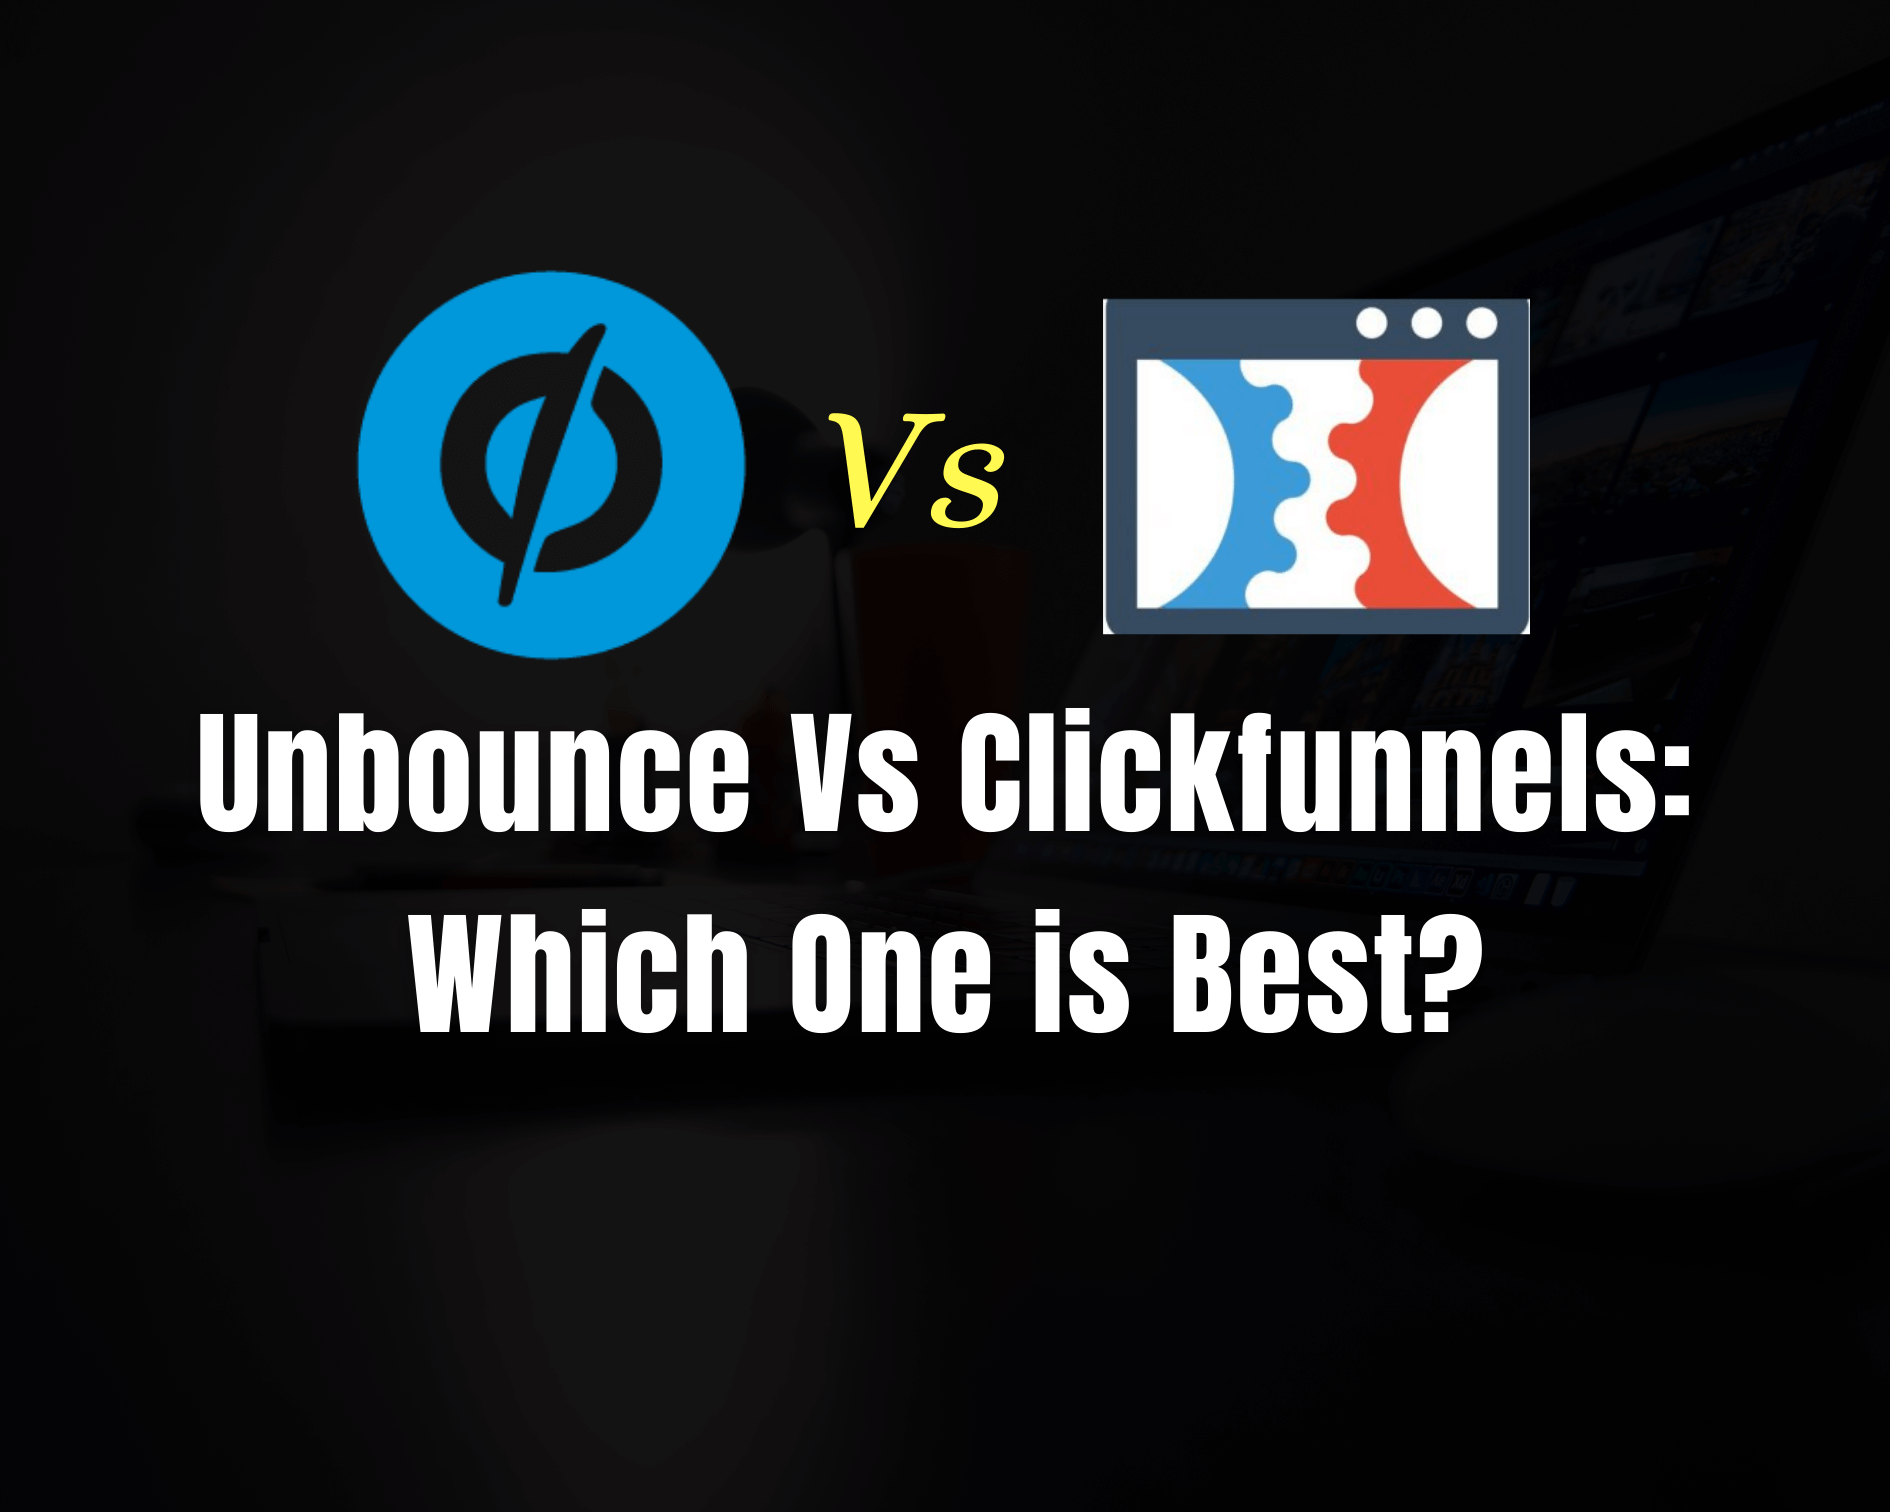 Unbounce Vs Clickfunnels: Which One Is Best For Generating Conversions?